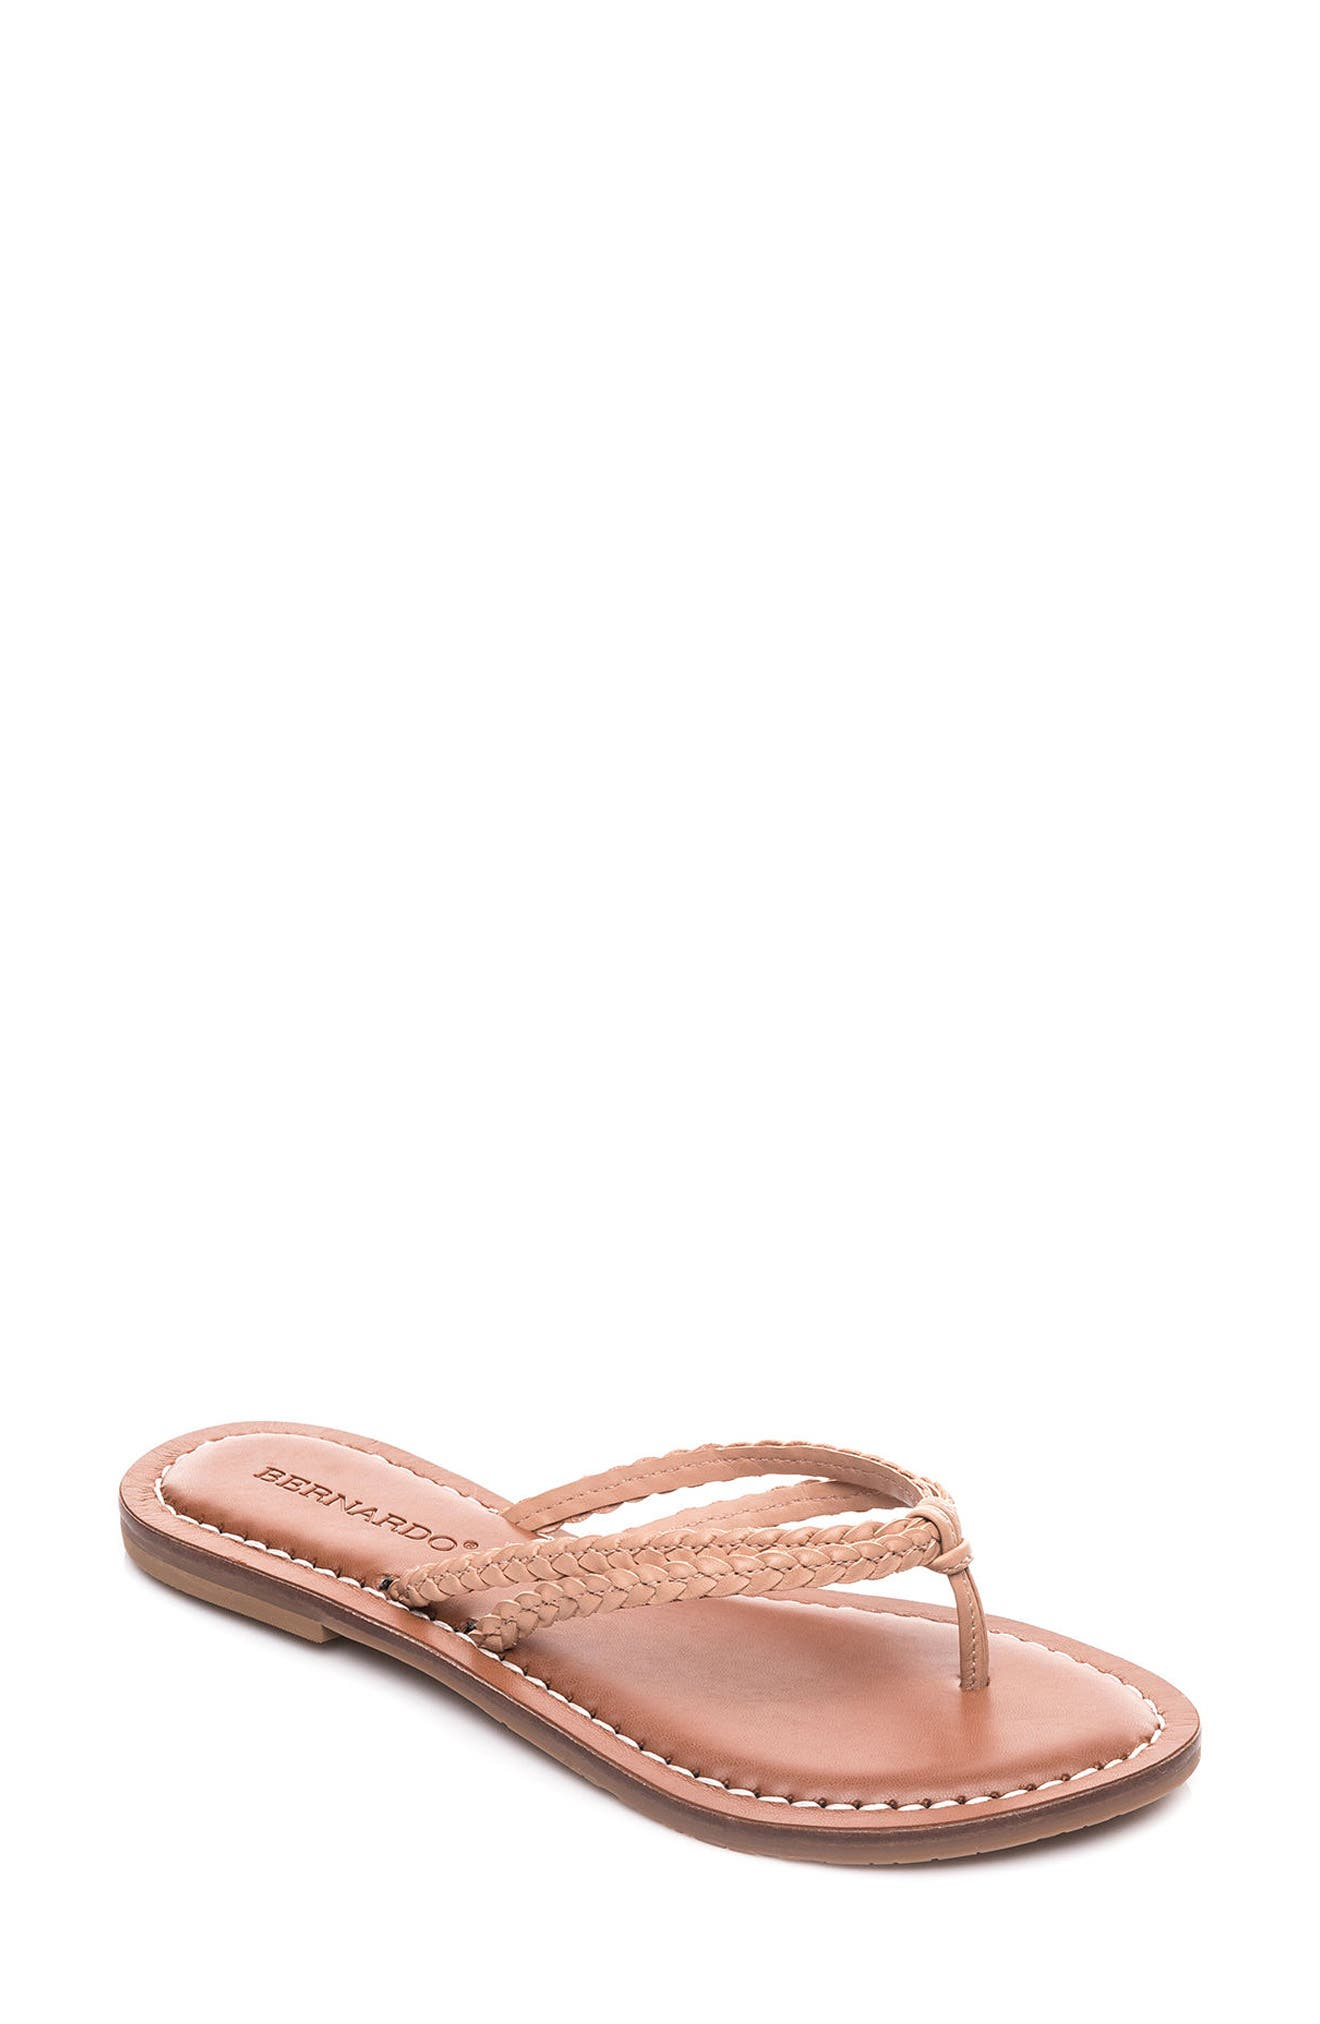 Bernardo Greta Braided Strap Sandal,                             Main thumbnail 5, color,